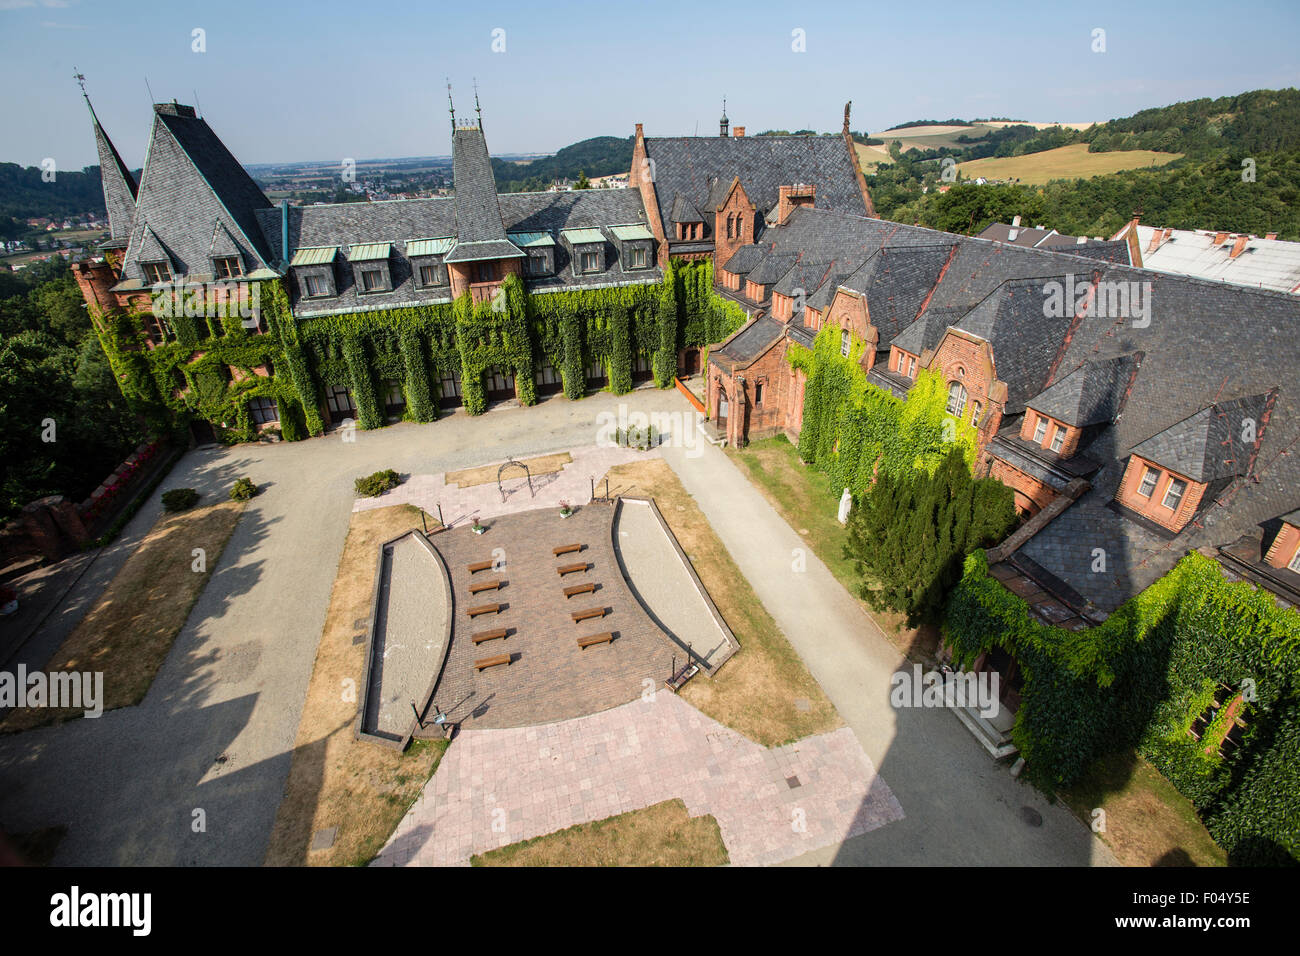 The Red Castle, castle, chateau, classicism, sight, cultural heritage site - Stock Image